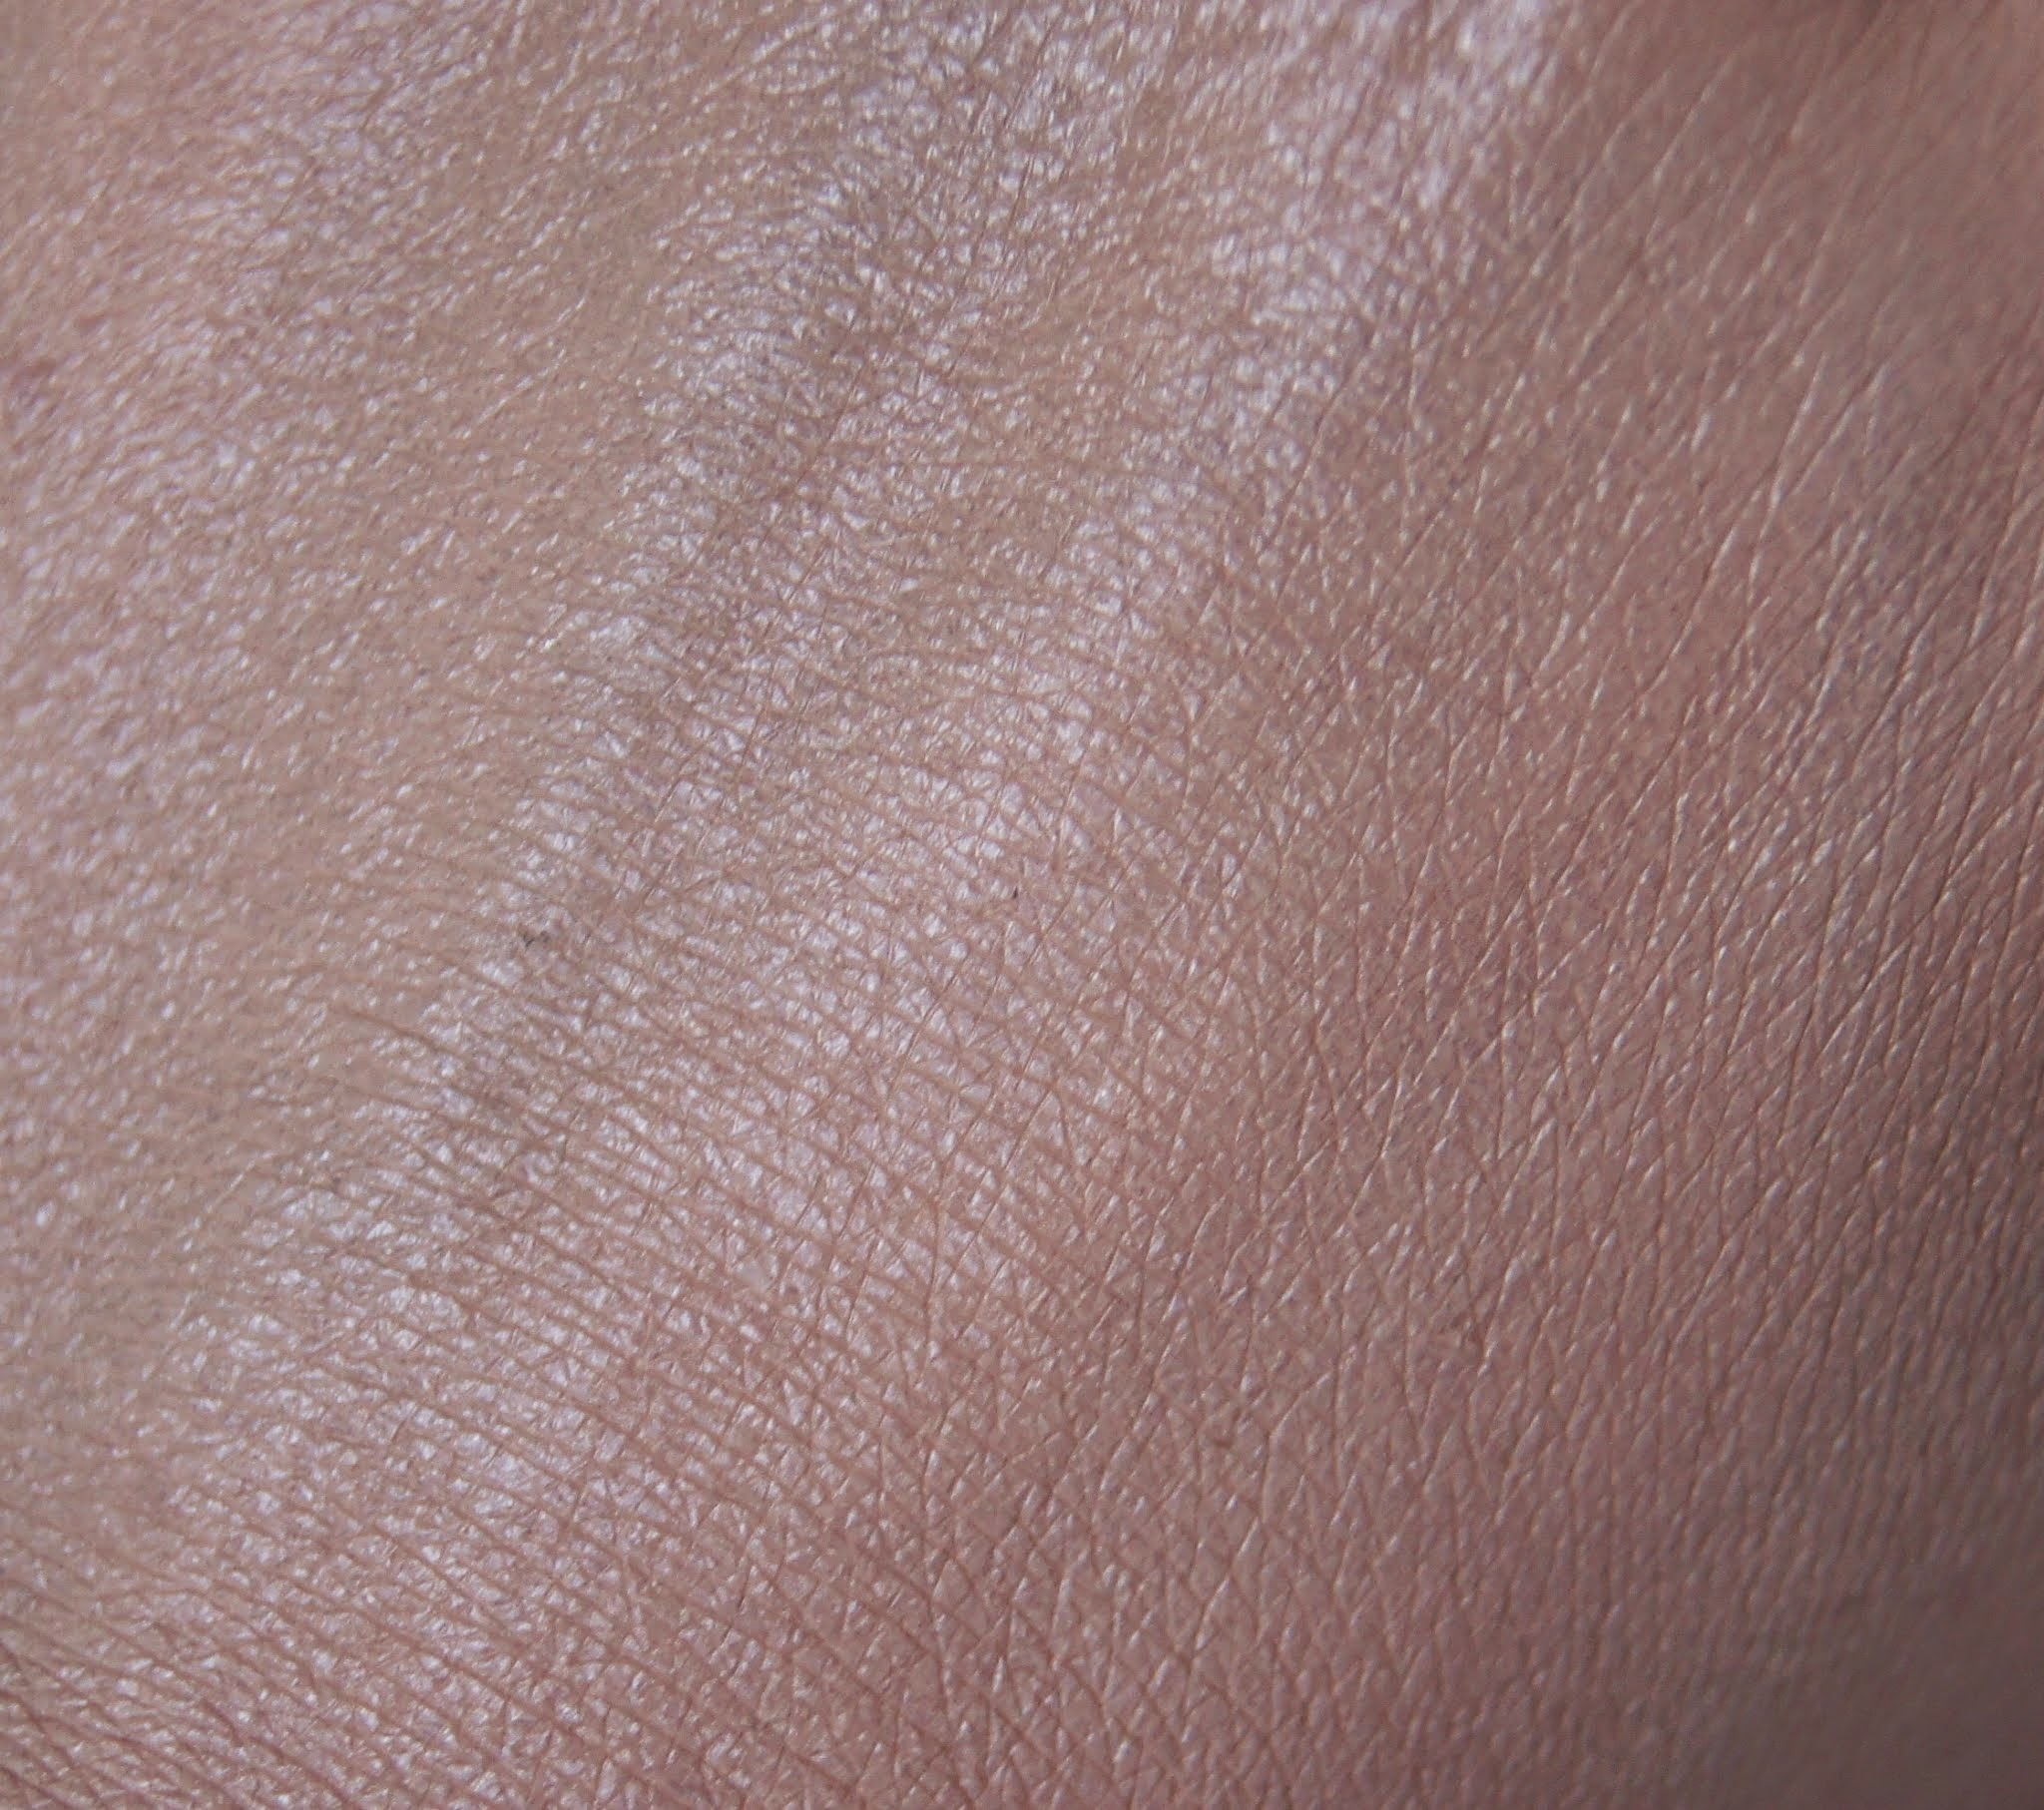 Revlon Colourstay Oily/Combination Foundation 180 Sand Beige Swatch